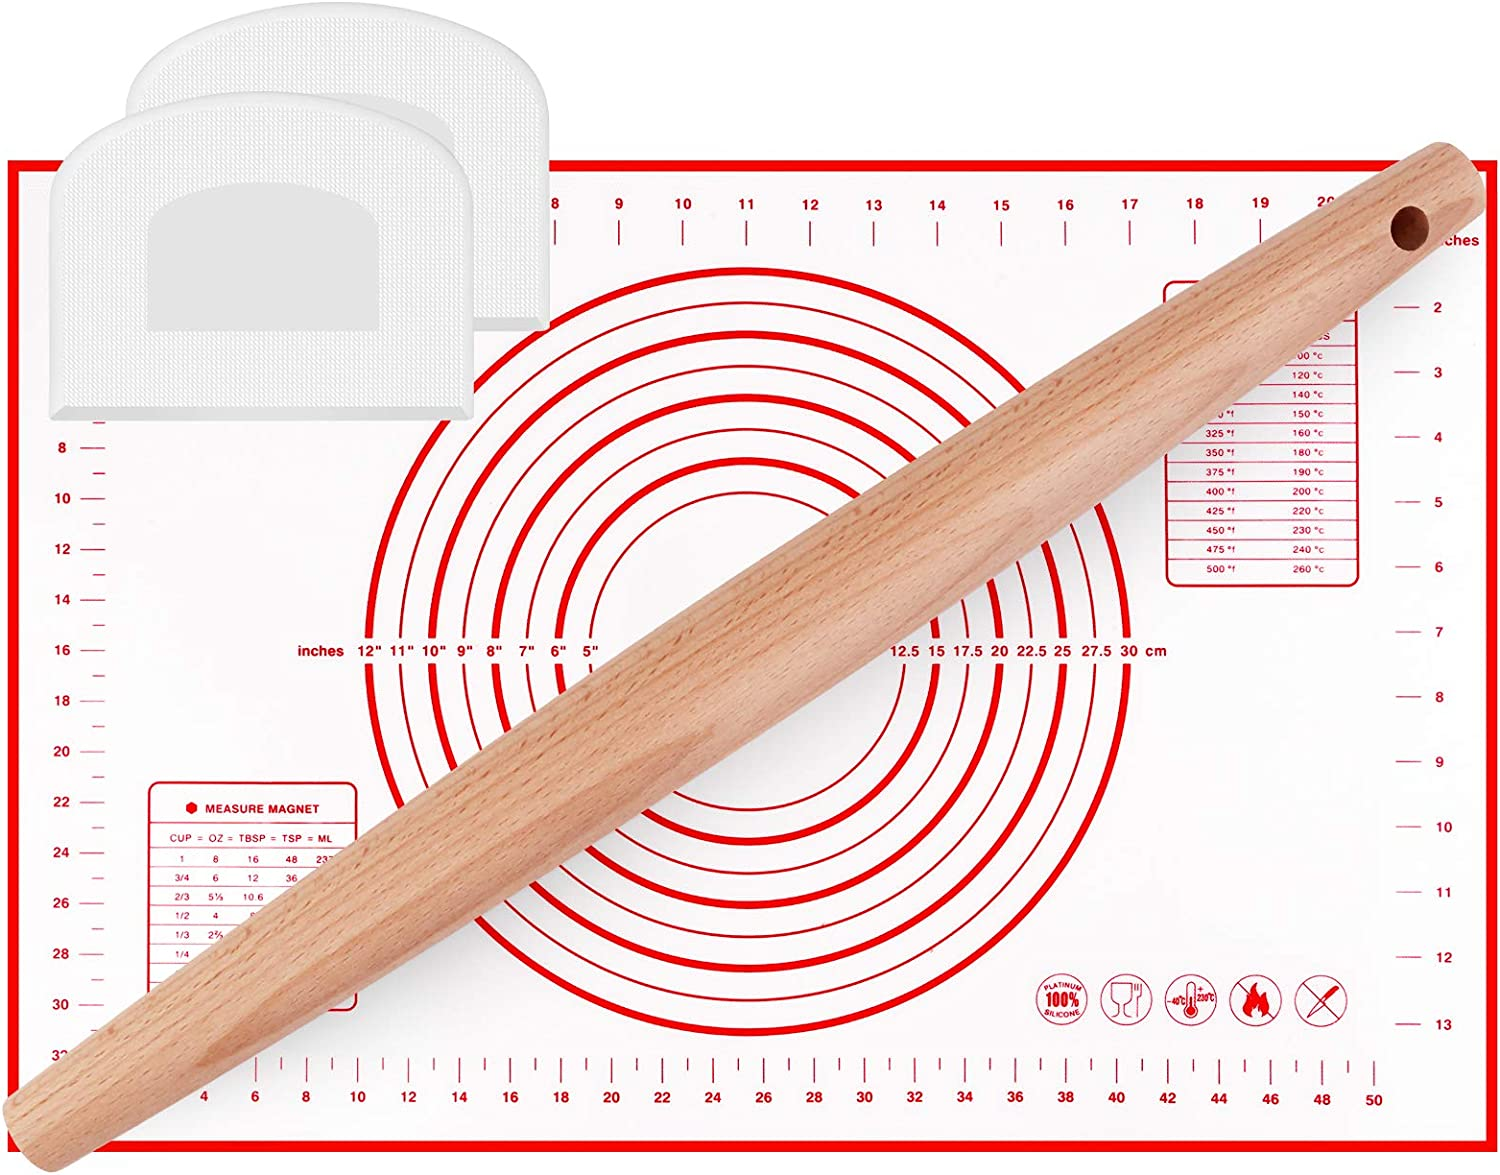 Mixoo Silicone Baking Mat with Wooden Rolling Pin Set - Non-Stick Food Safe Dough Rolling Pastry Mat with a French Rolling Pin and 2 Dough Scrapers for Baking, Fondant, Pie Crust, Pizza, Bread, Cookie